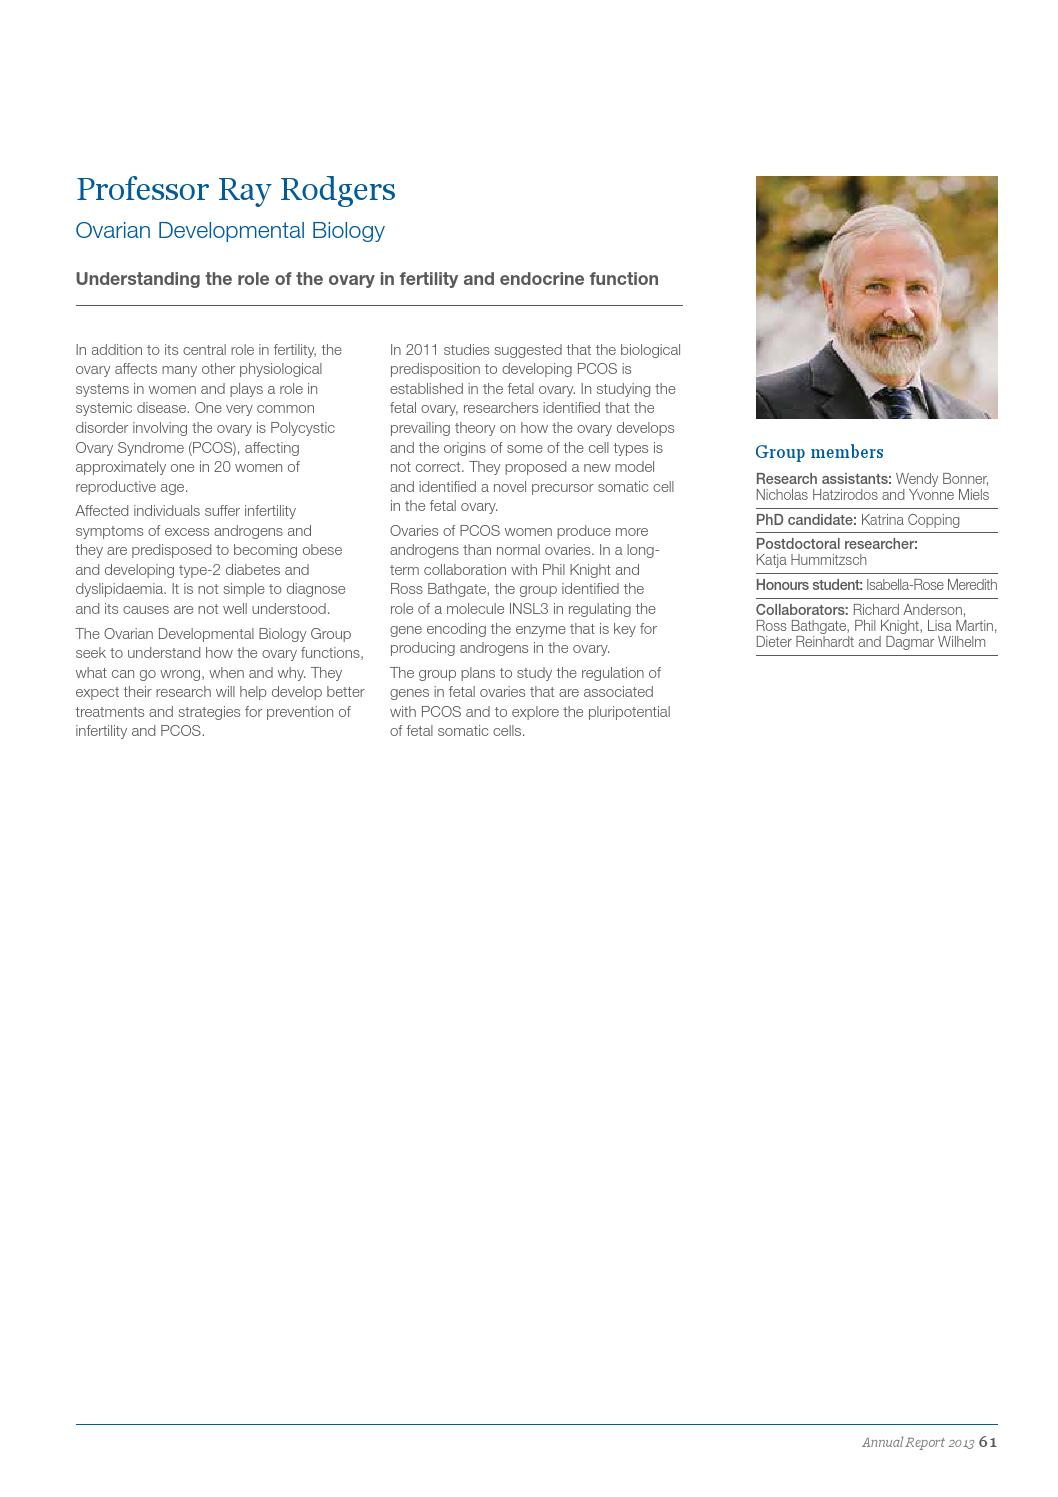 Robinson Research Institute's 2013 Annual Report by The